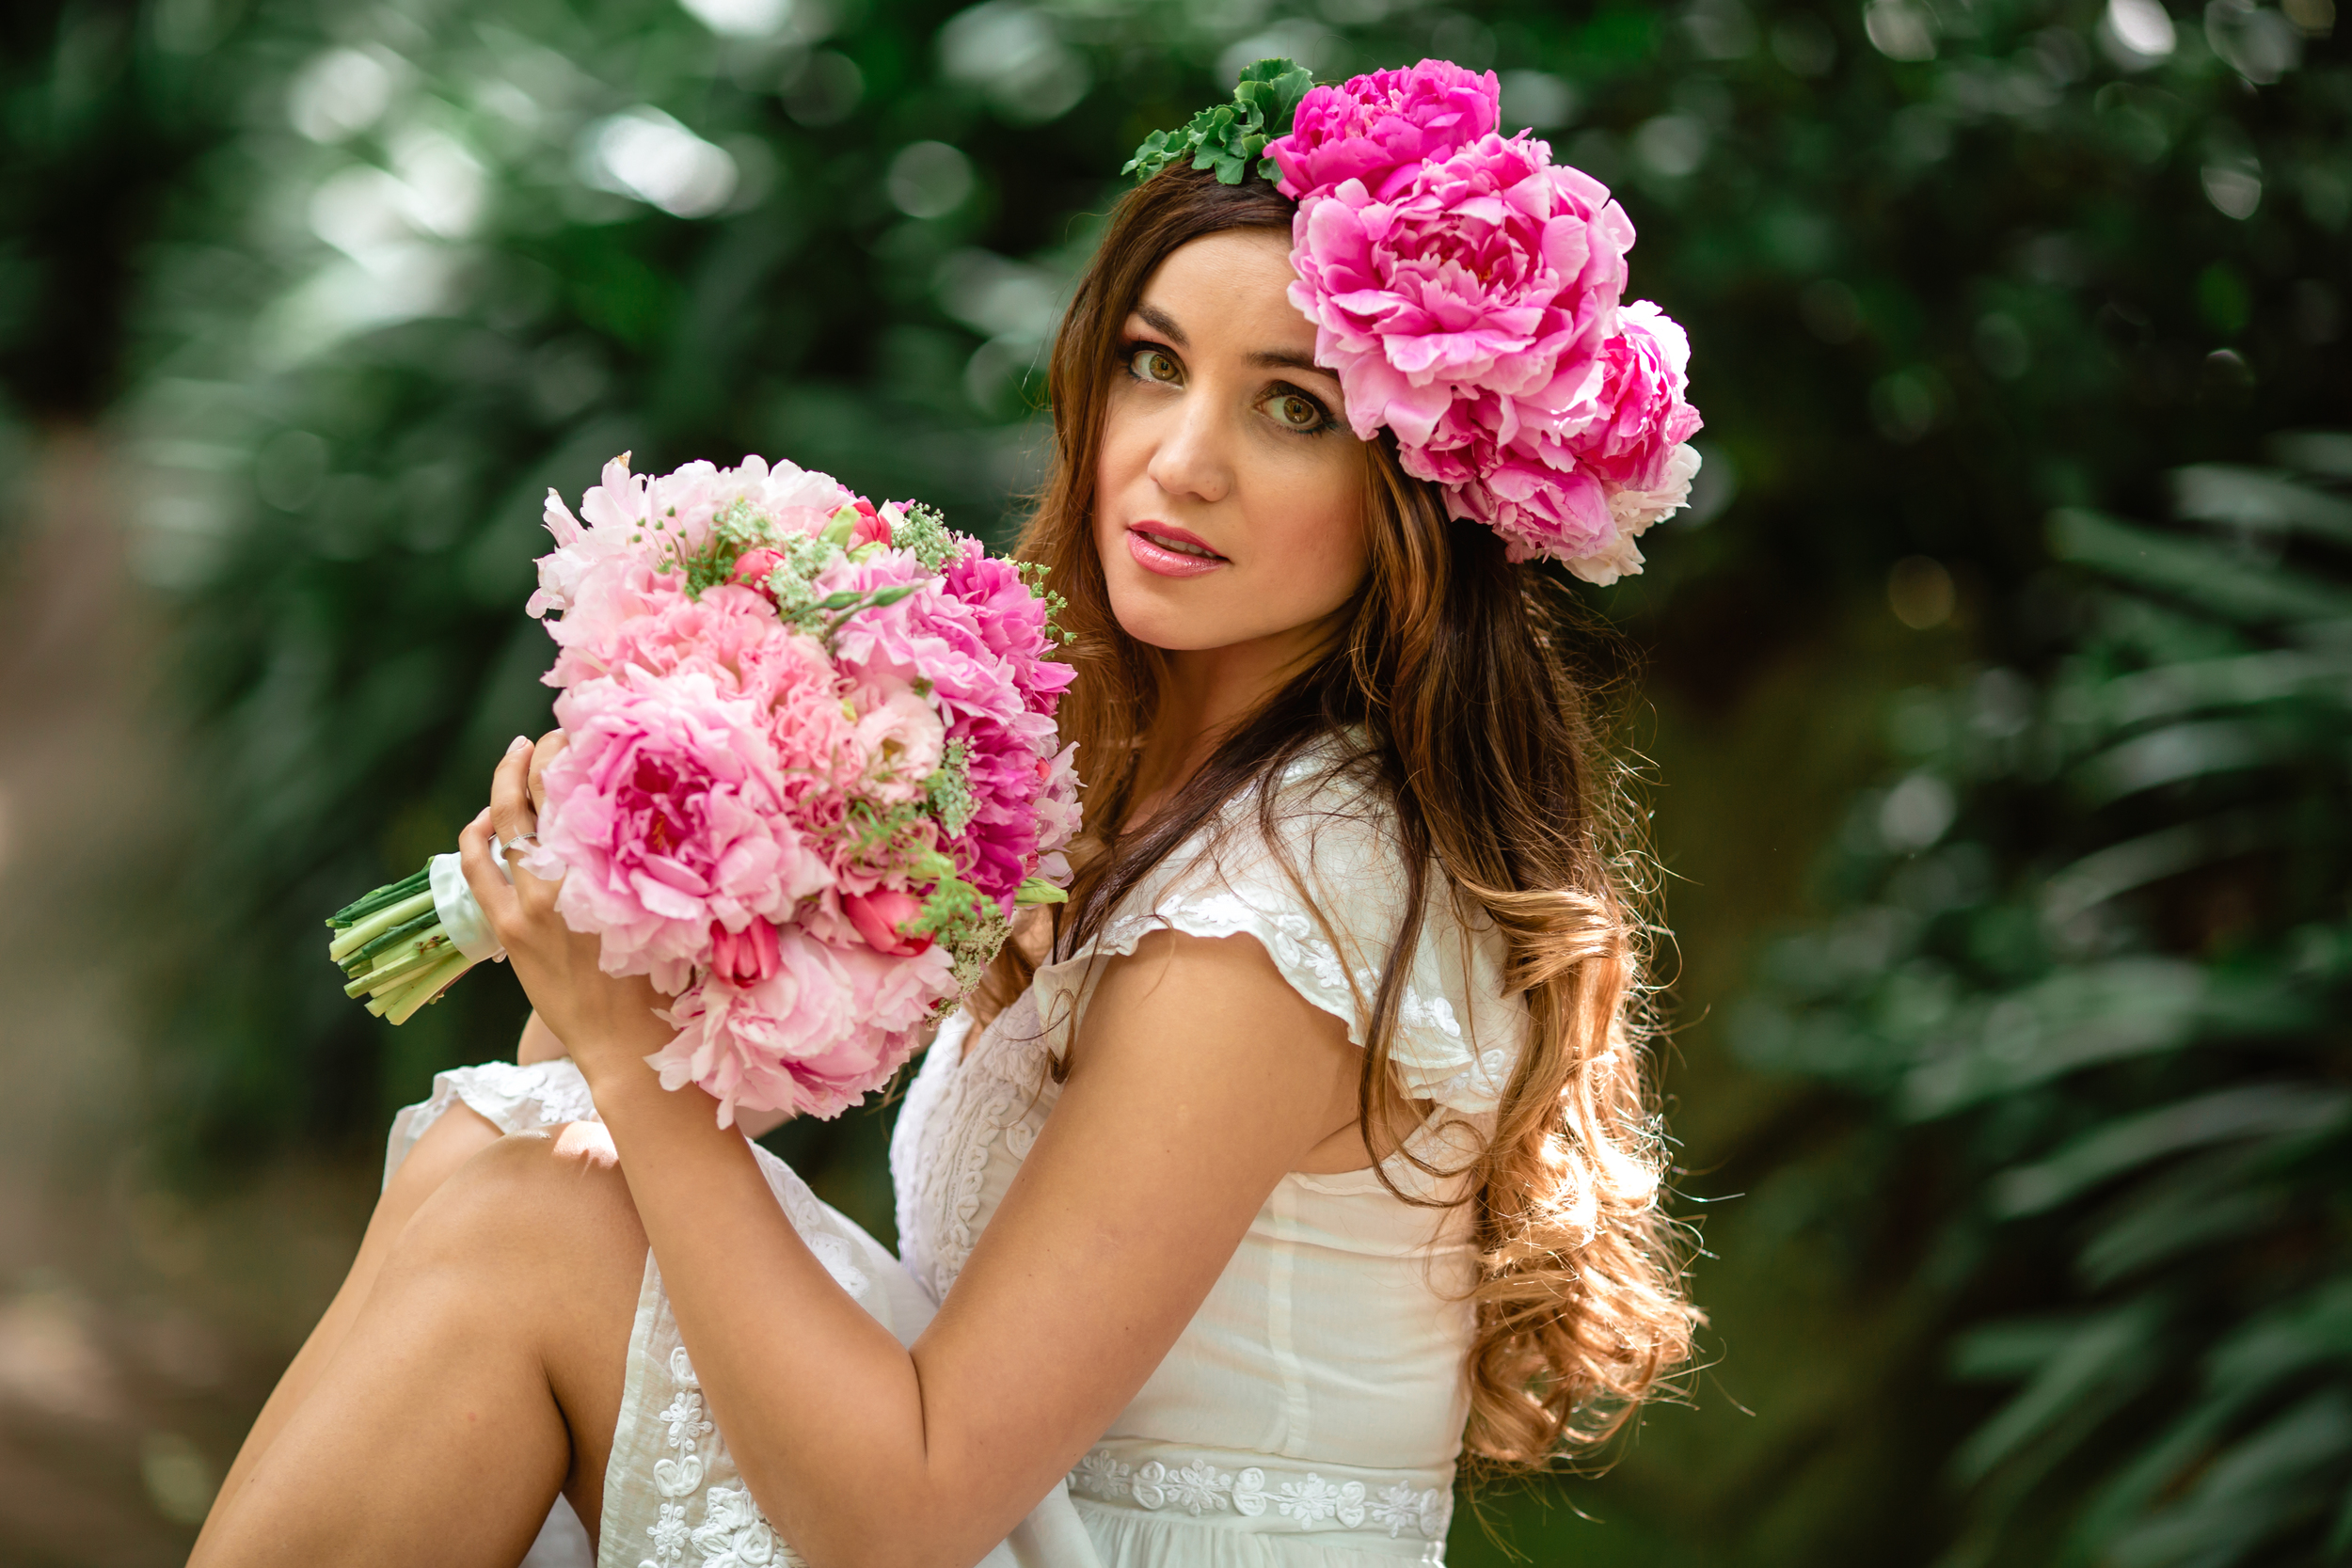 Garden Wedding - Floral Crown and bridal bouquet 10.jpg